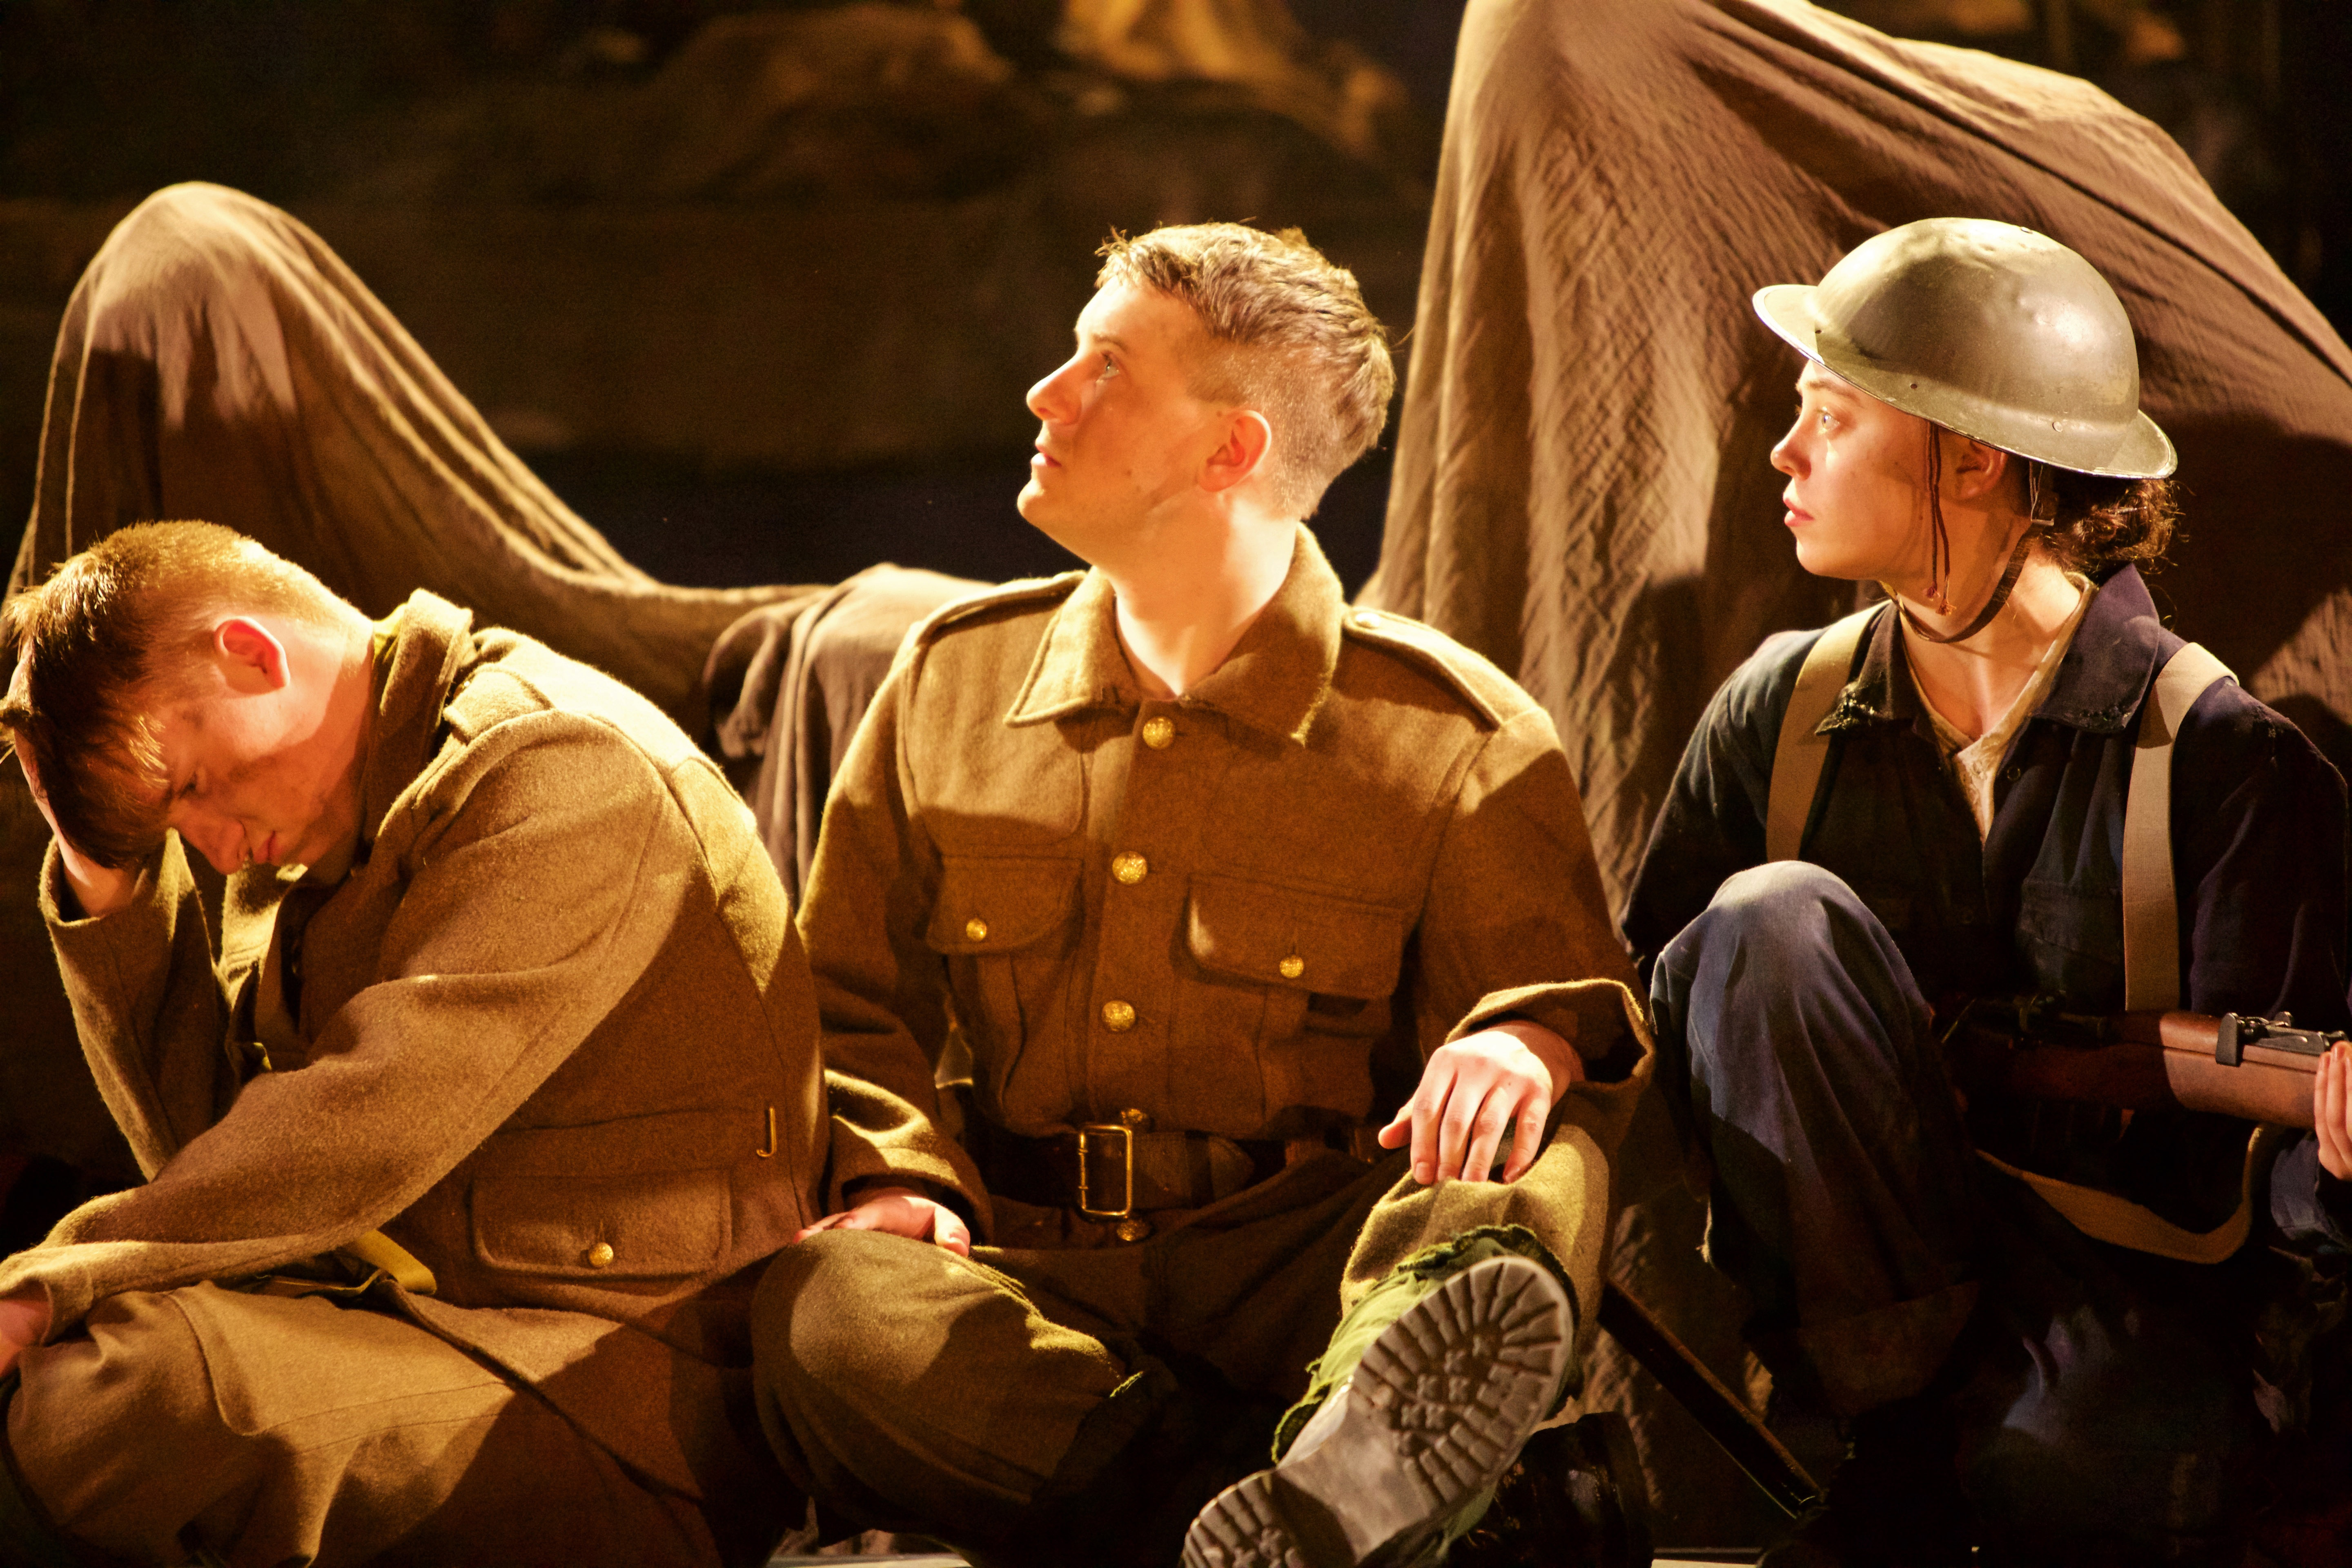 private peaceful 088